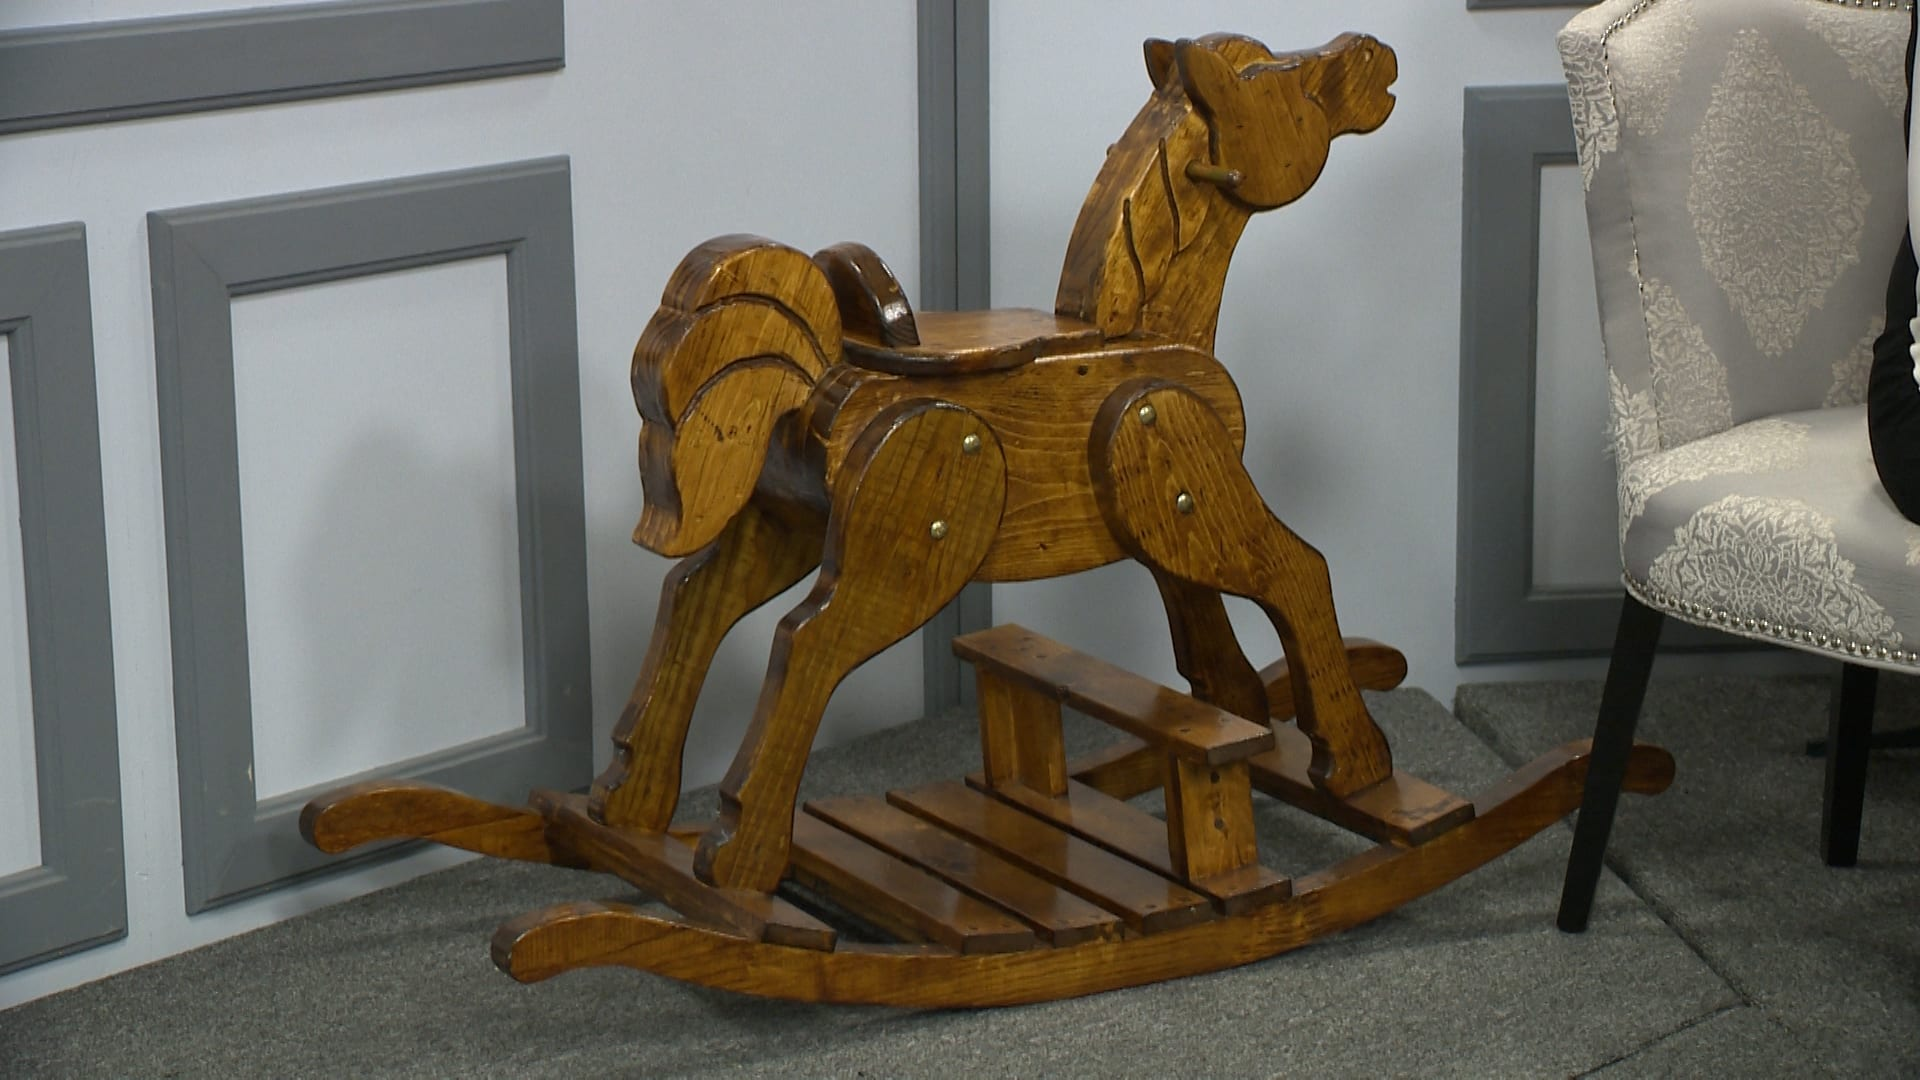 WOODEN ROCKING HORSE <br/> Donated by: JOSEPH SLATE <br/> Valued at: $375